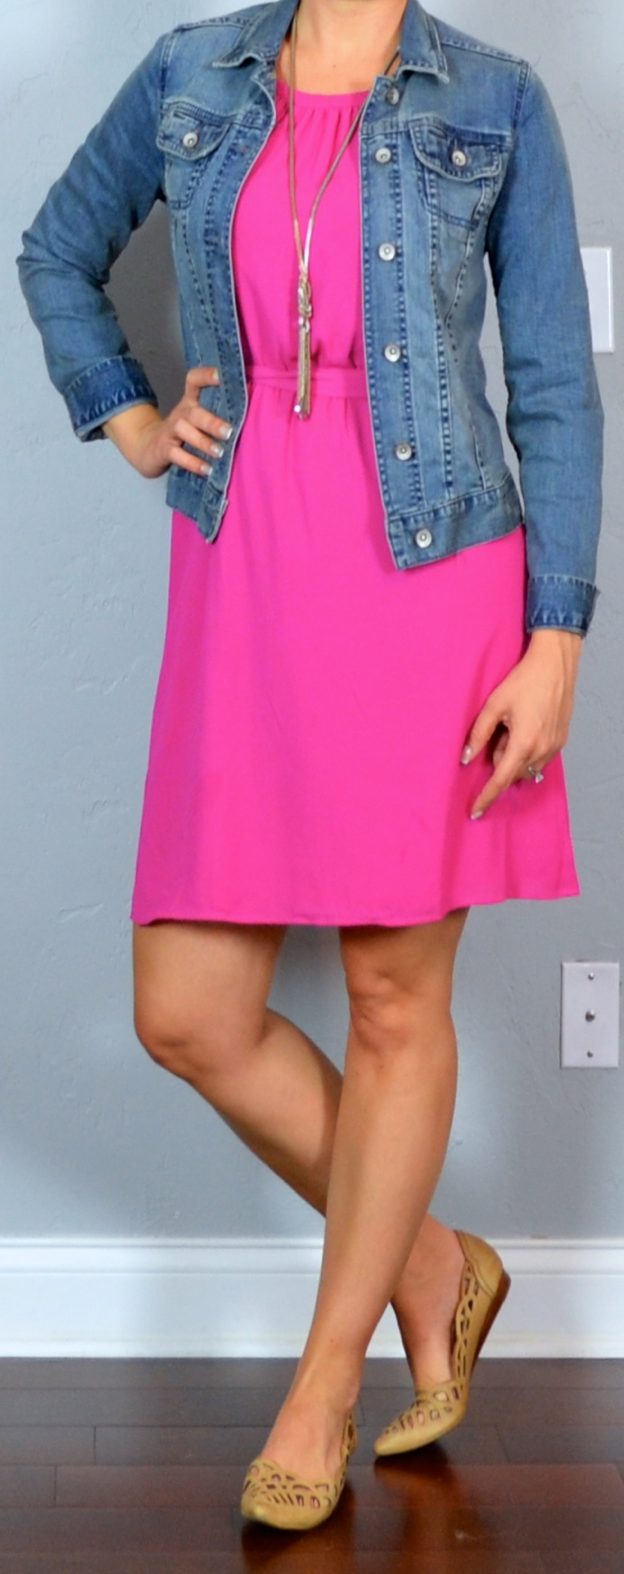 Outfit Post Hot Pink Dress Jean Jacket Nude Cutout Flats | Outfit Posts